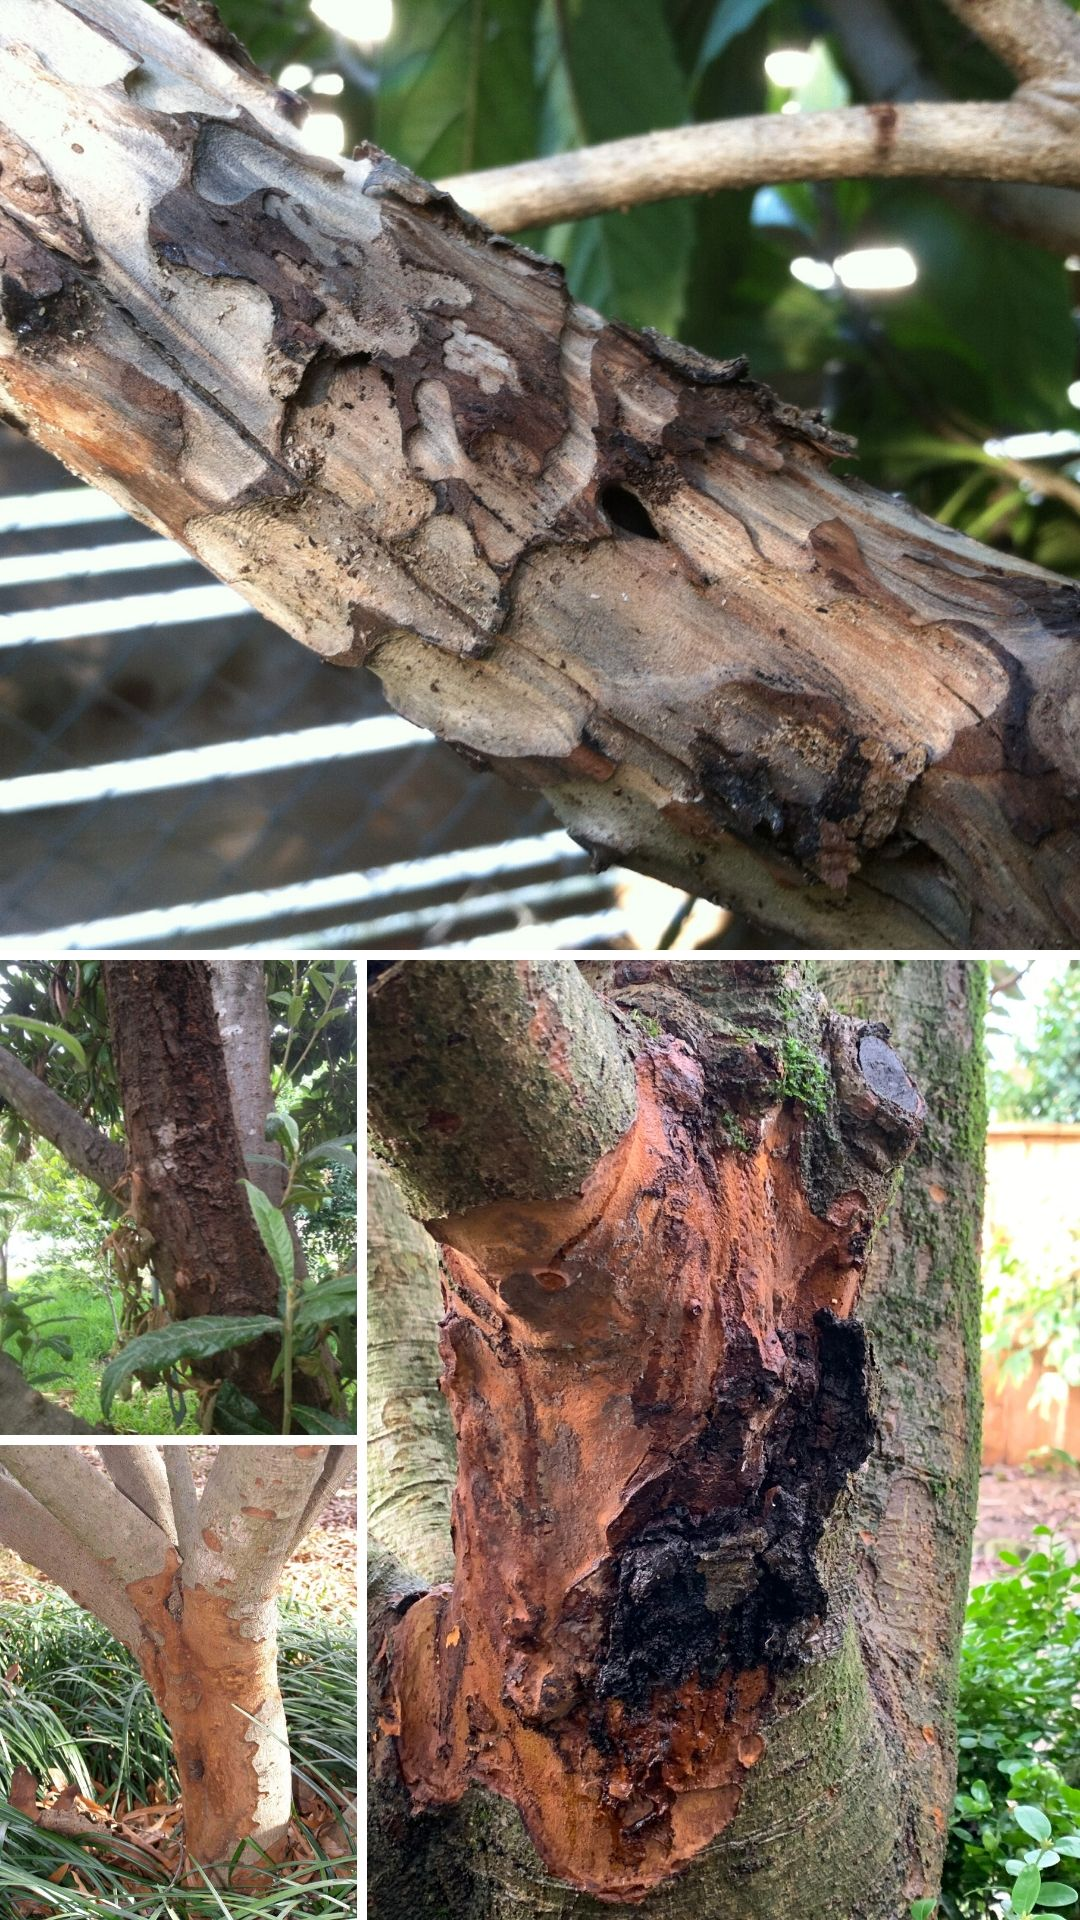 Loquat tree's pests and diseases